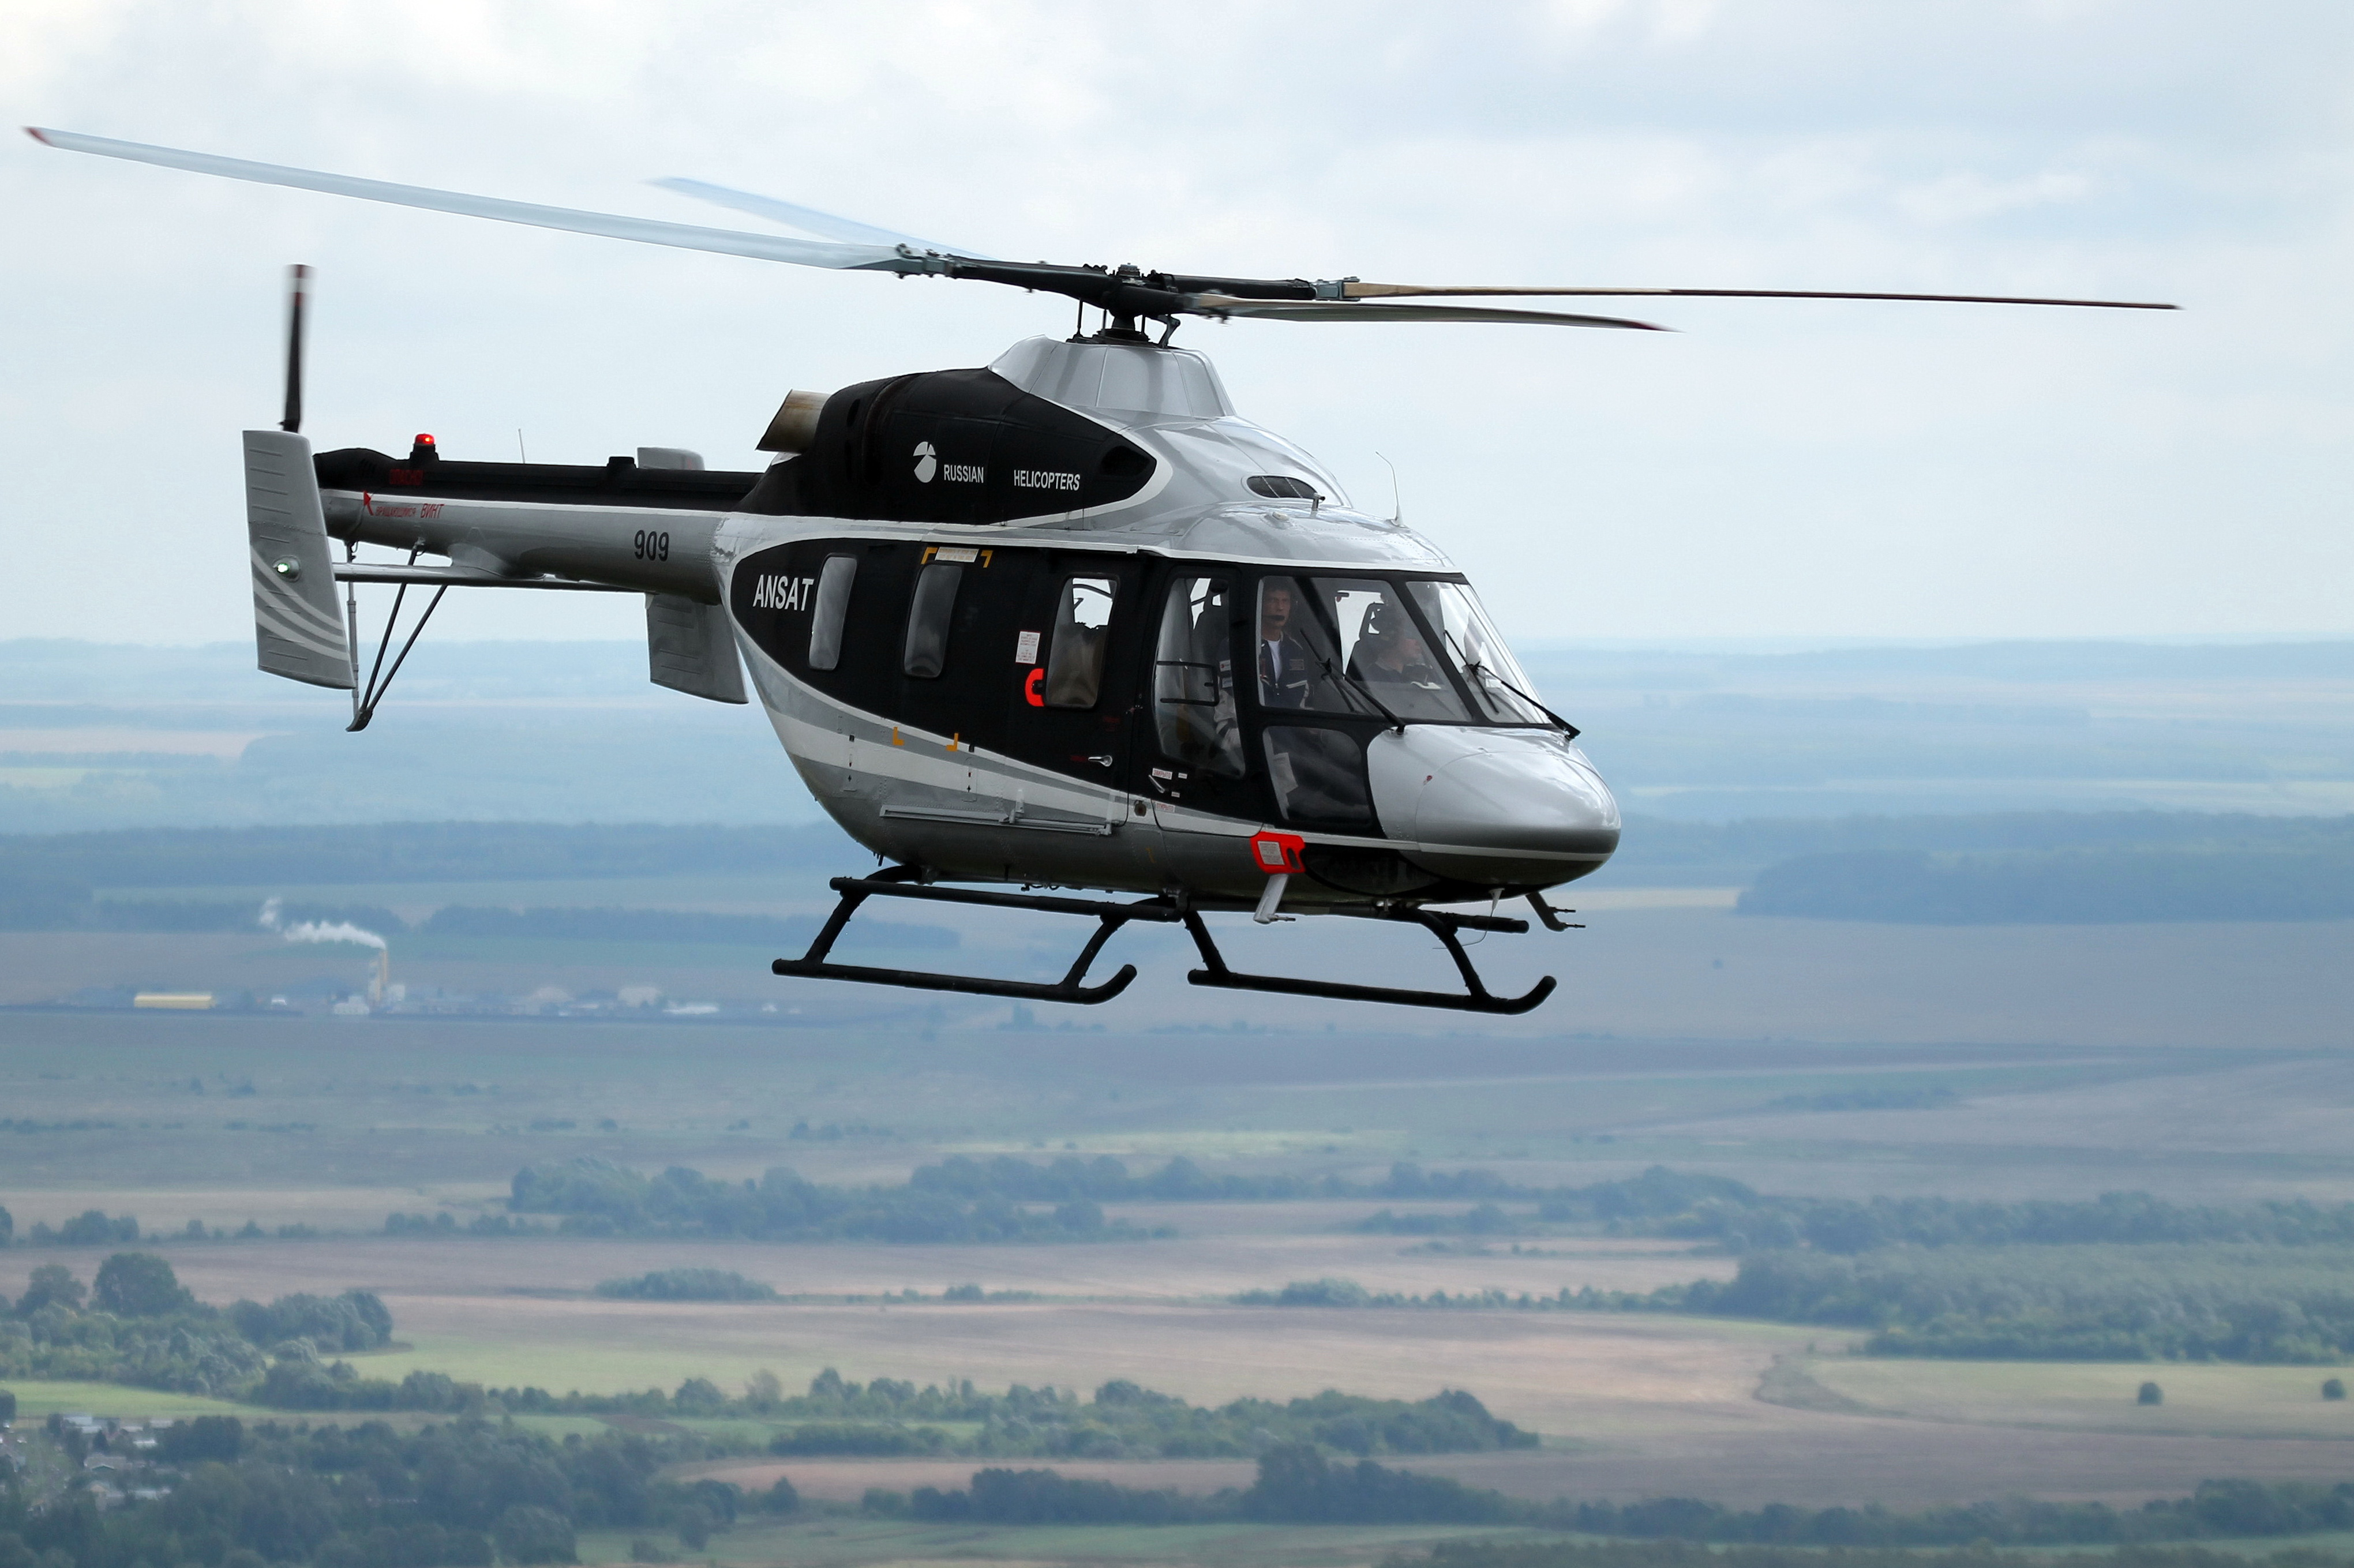 STLC will receive additional capitalization in 2018 worth RUB 5 bln for purchasing 31 helicopters